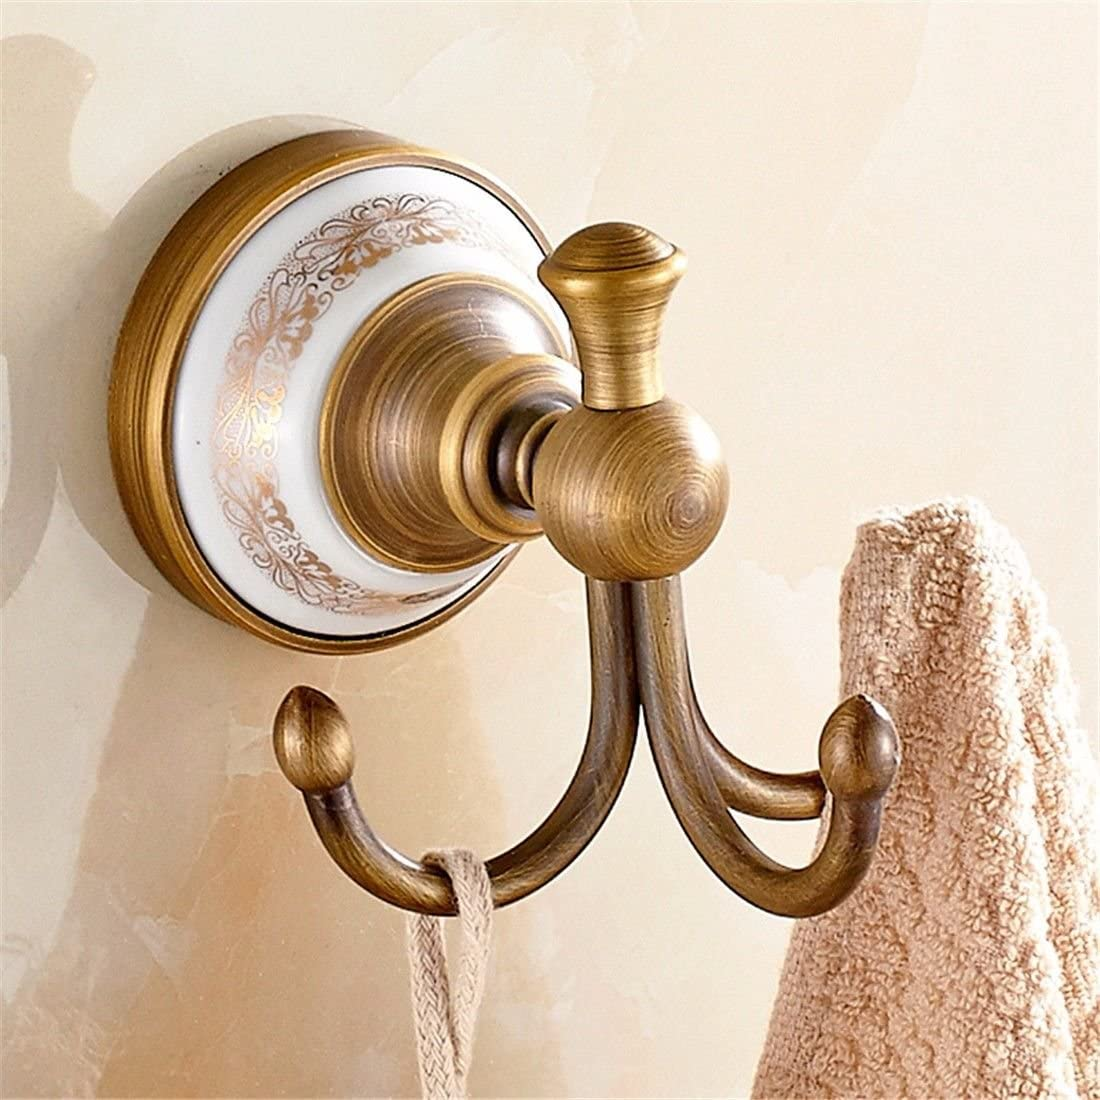 AiRobin-Continental Brass Antique Brushed Ceramic Base Robe Hook Bathroom Accessory